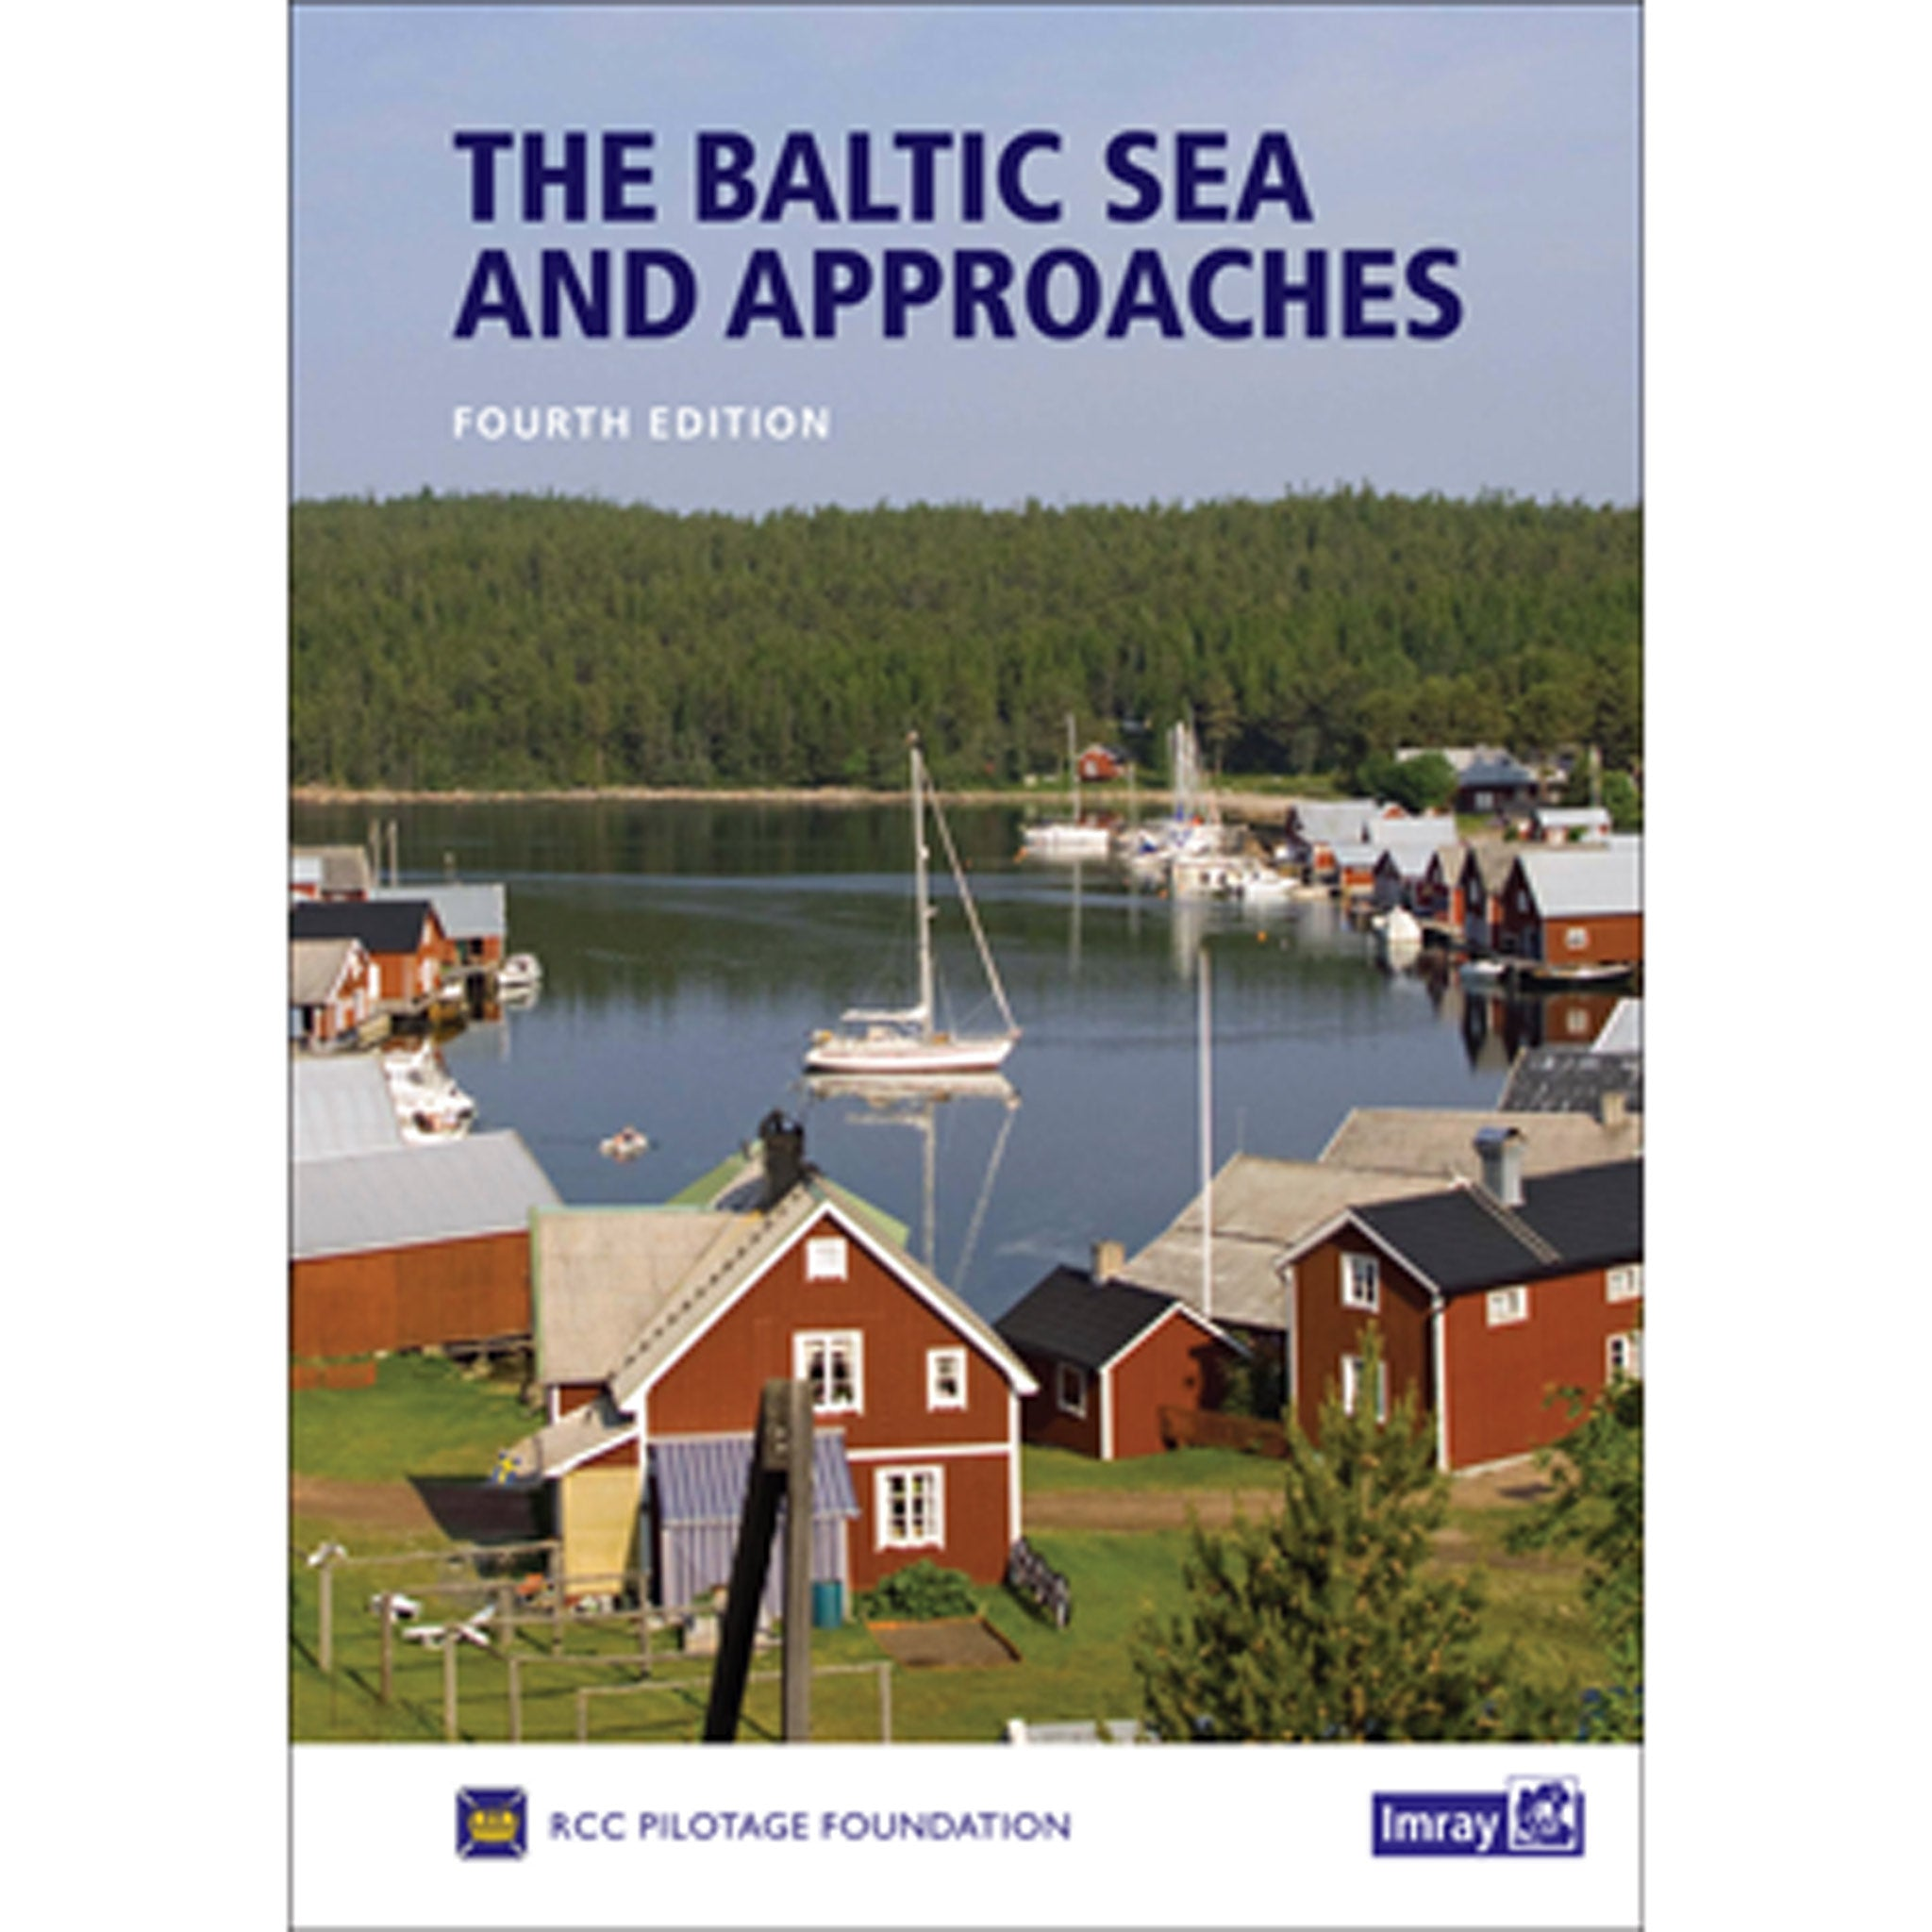 Imray The Baltic Sea and Approaches